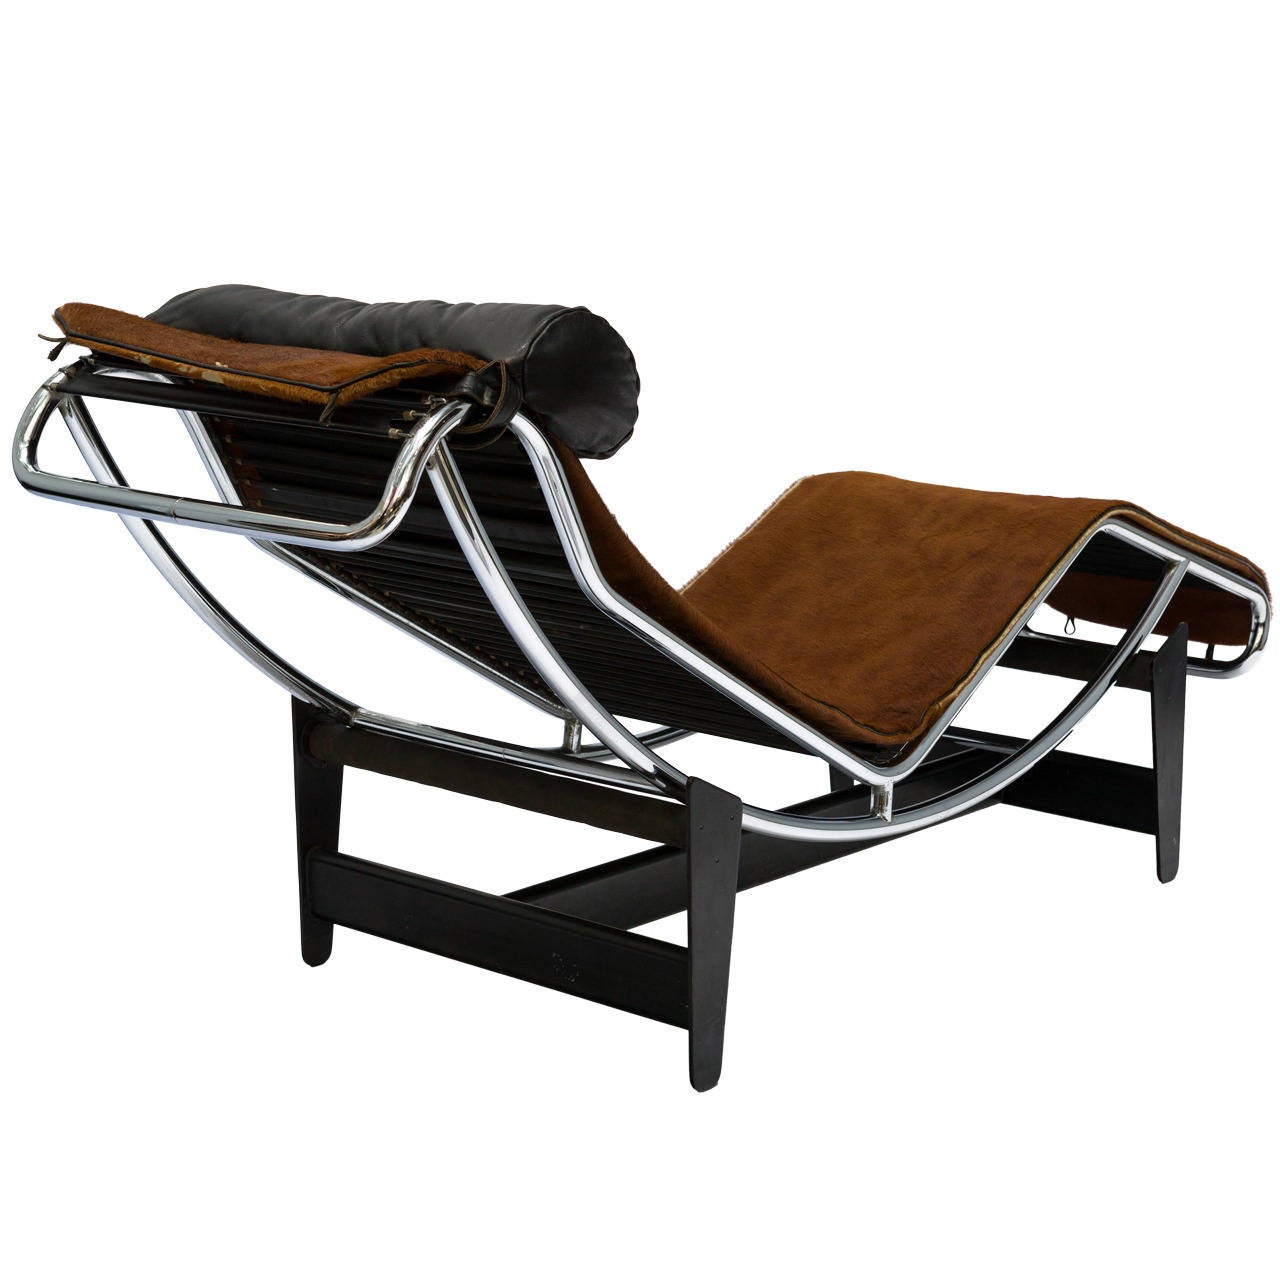 Le corbusier lc4 chaise lounge chair in cowhide for sale for Chaise longue lc4